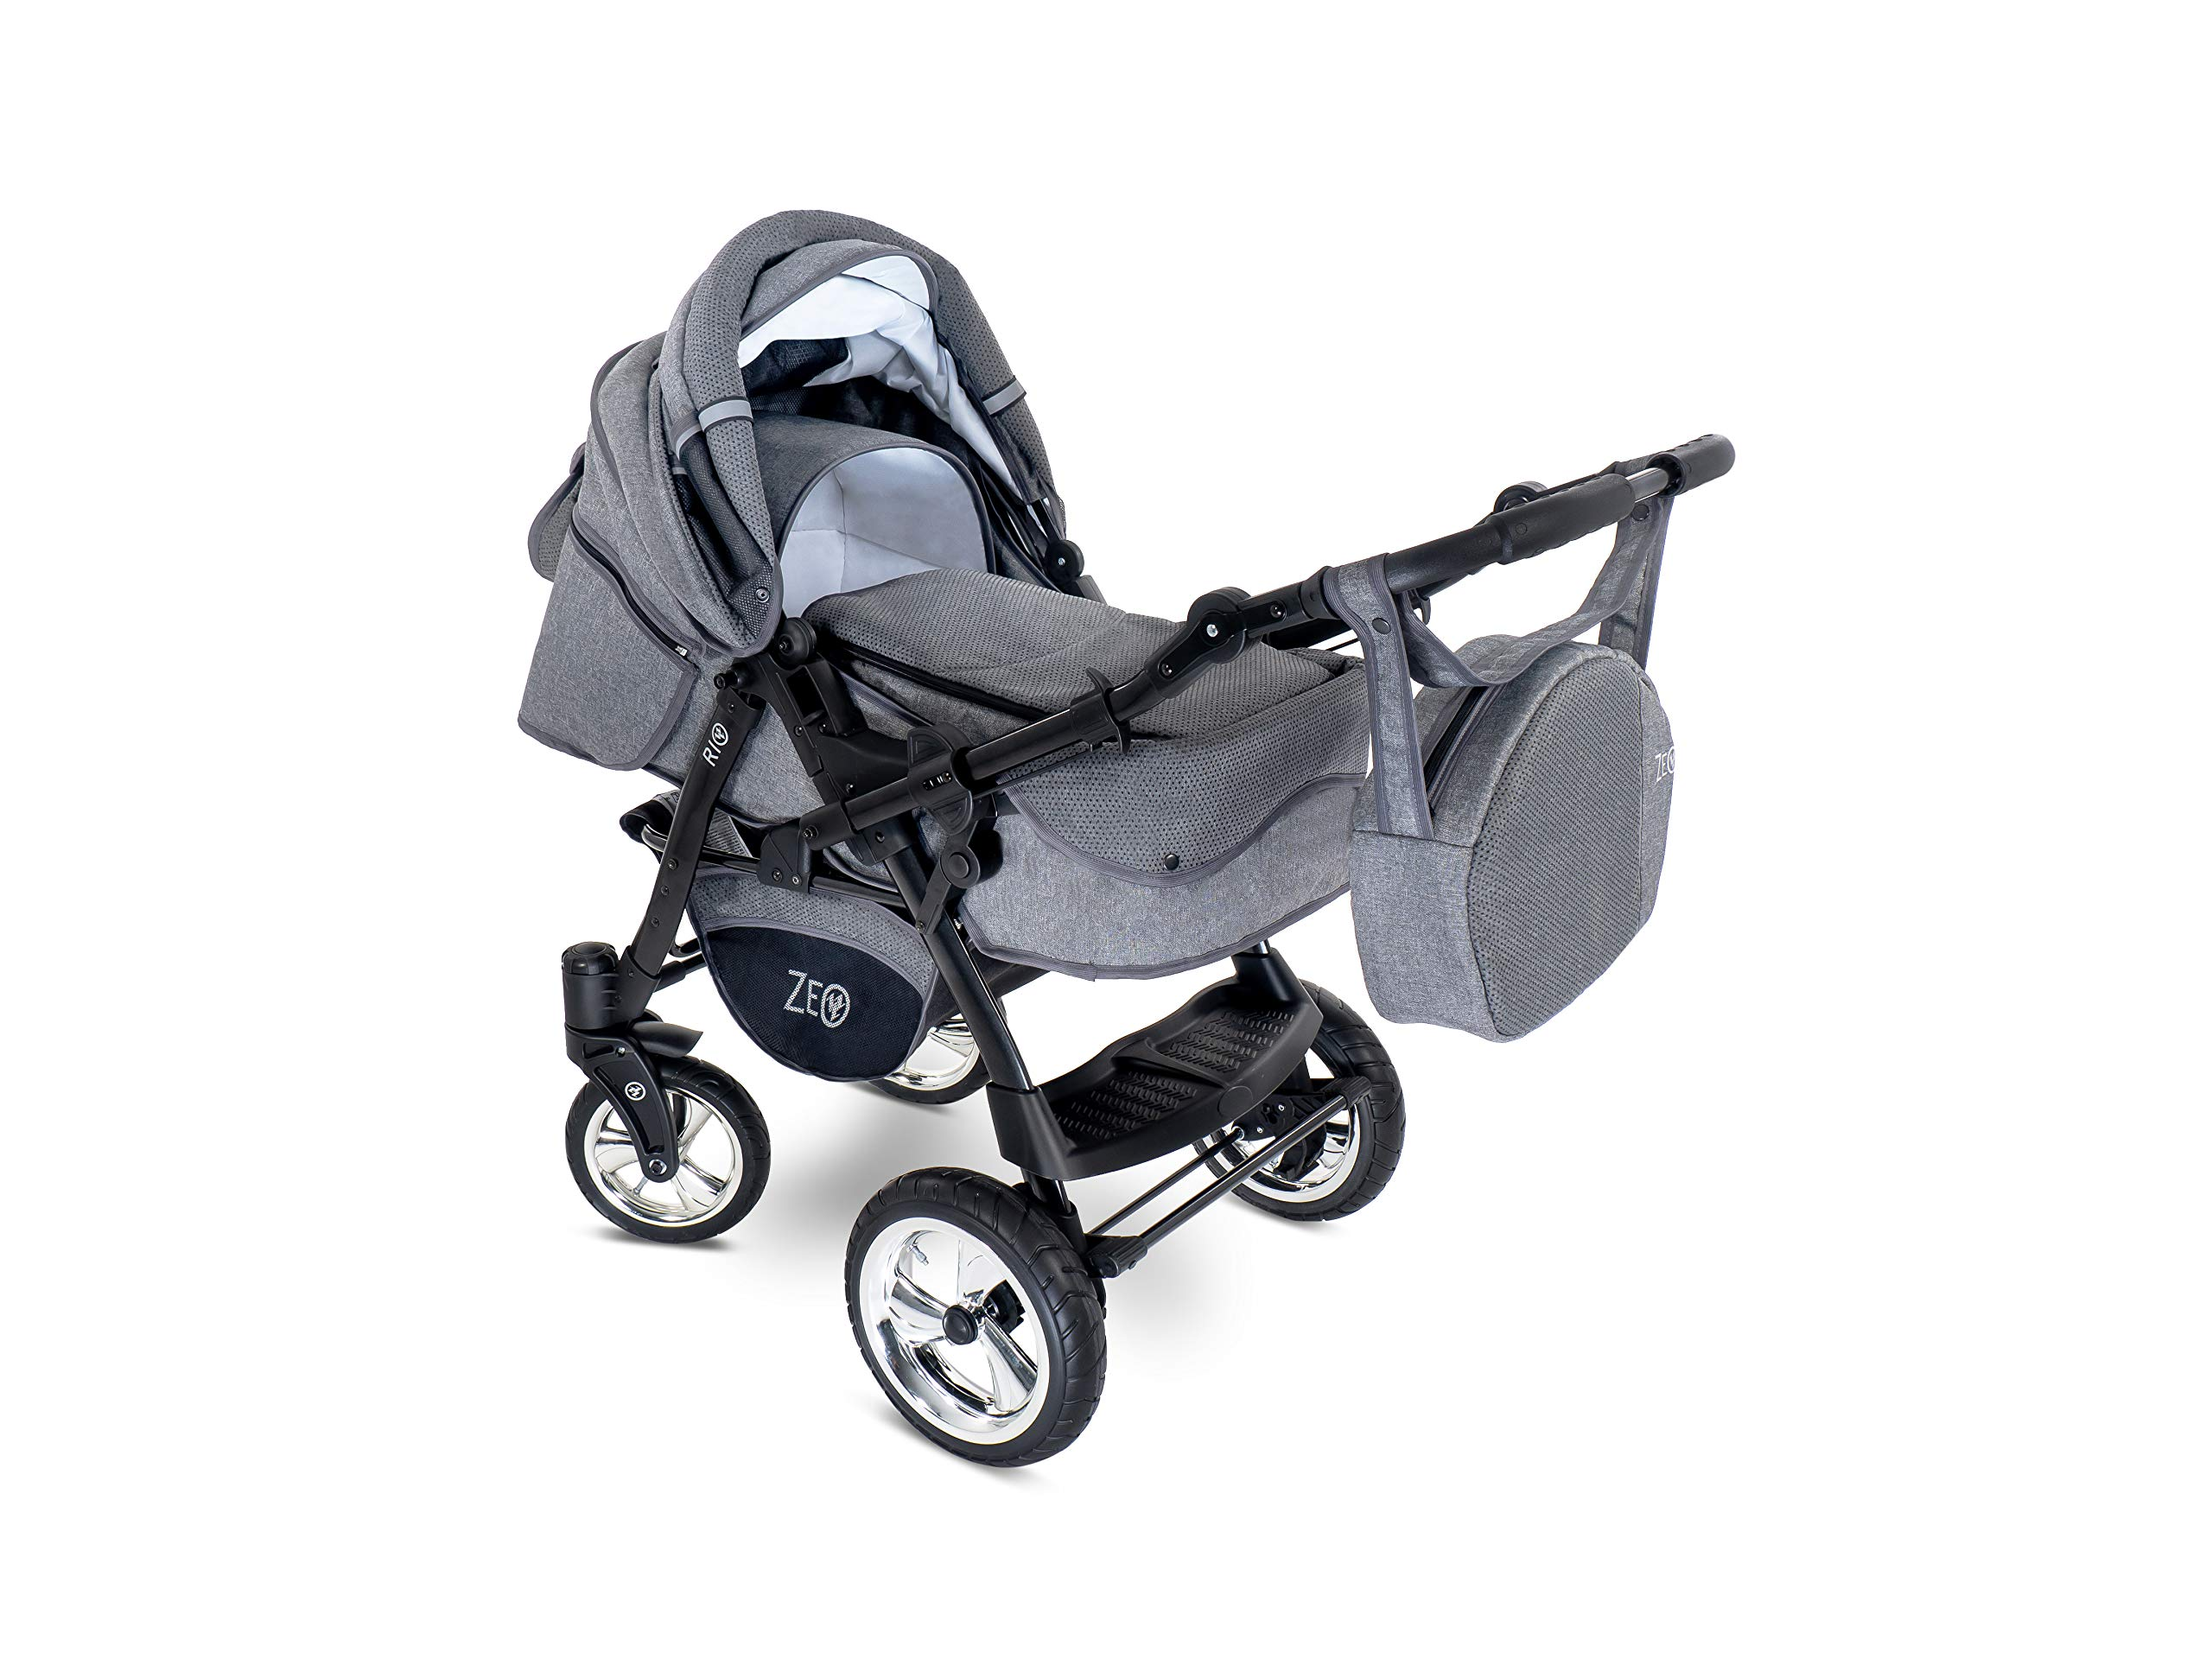 Baby Pram Zeo Rio 3in1 Set - All You Need! carrycot Gondola Buggy Pushchair car seat (R3) Zeo 3 in 1 combination stroller complete set, with reversible handle to the buggy, child car seat or baby carriage Has 360 ° swiveling wheels, two-fold suspension, four-stage backrest, five-position adjustable footrest and a five-point safety belt The stroller can be easily converted into other functions and easy to transport 5